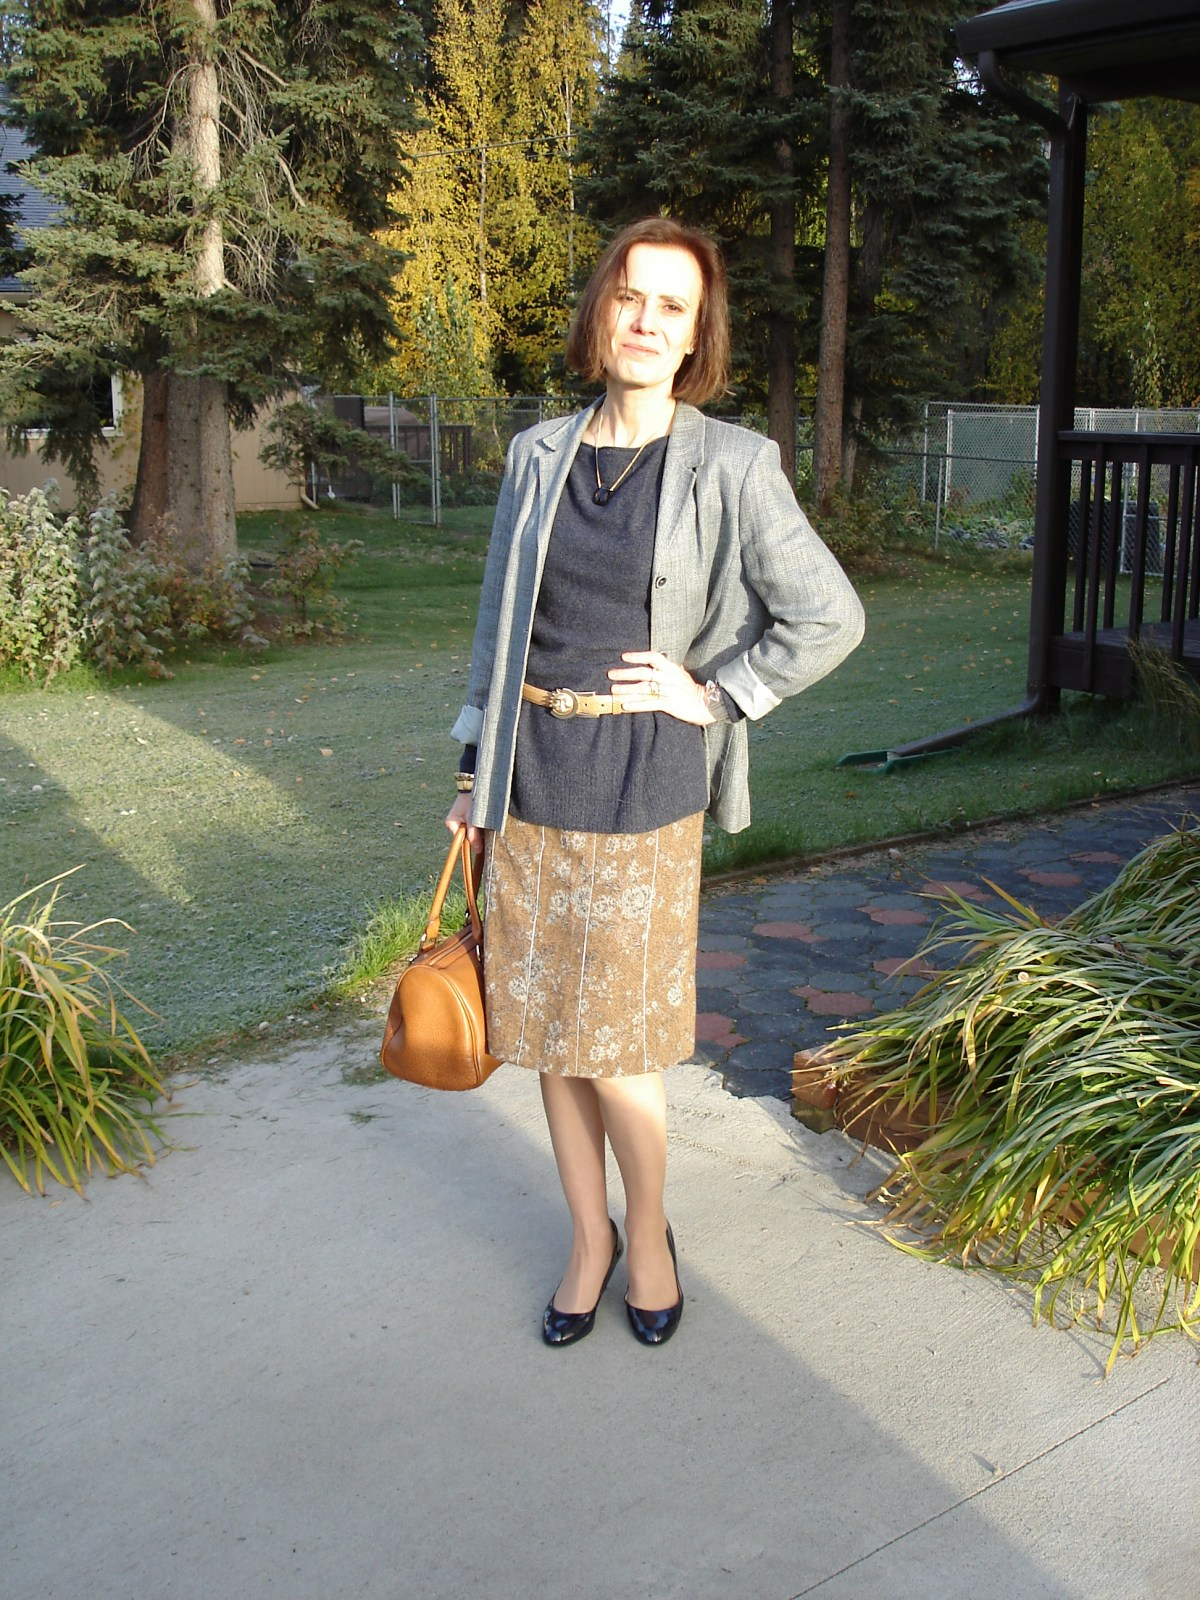 midlife style blogger in tweed skirt with blazer as unmatched suit for work